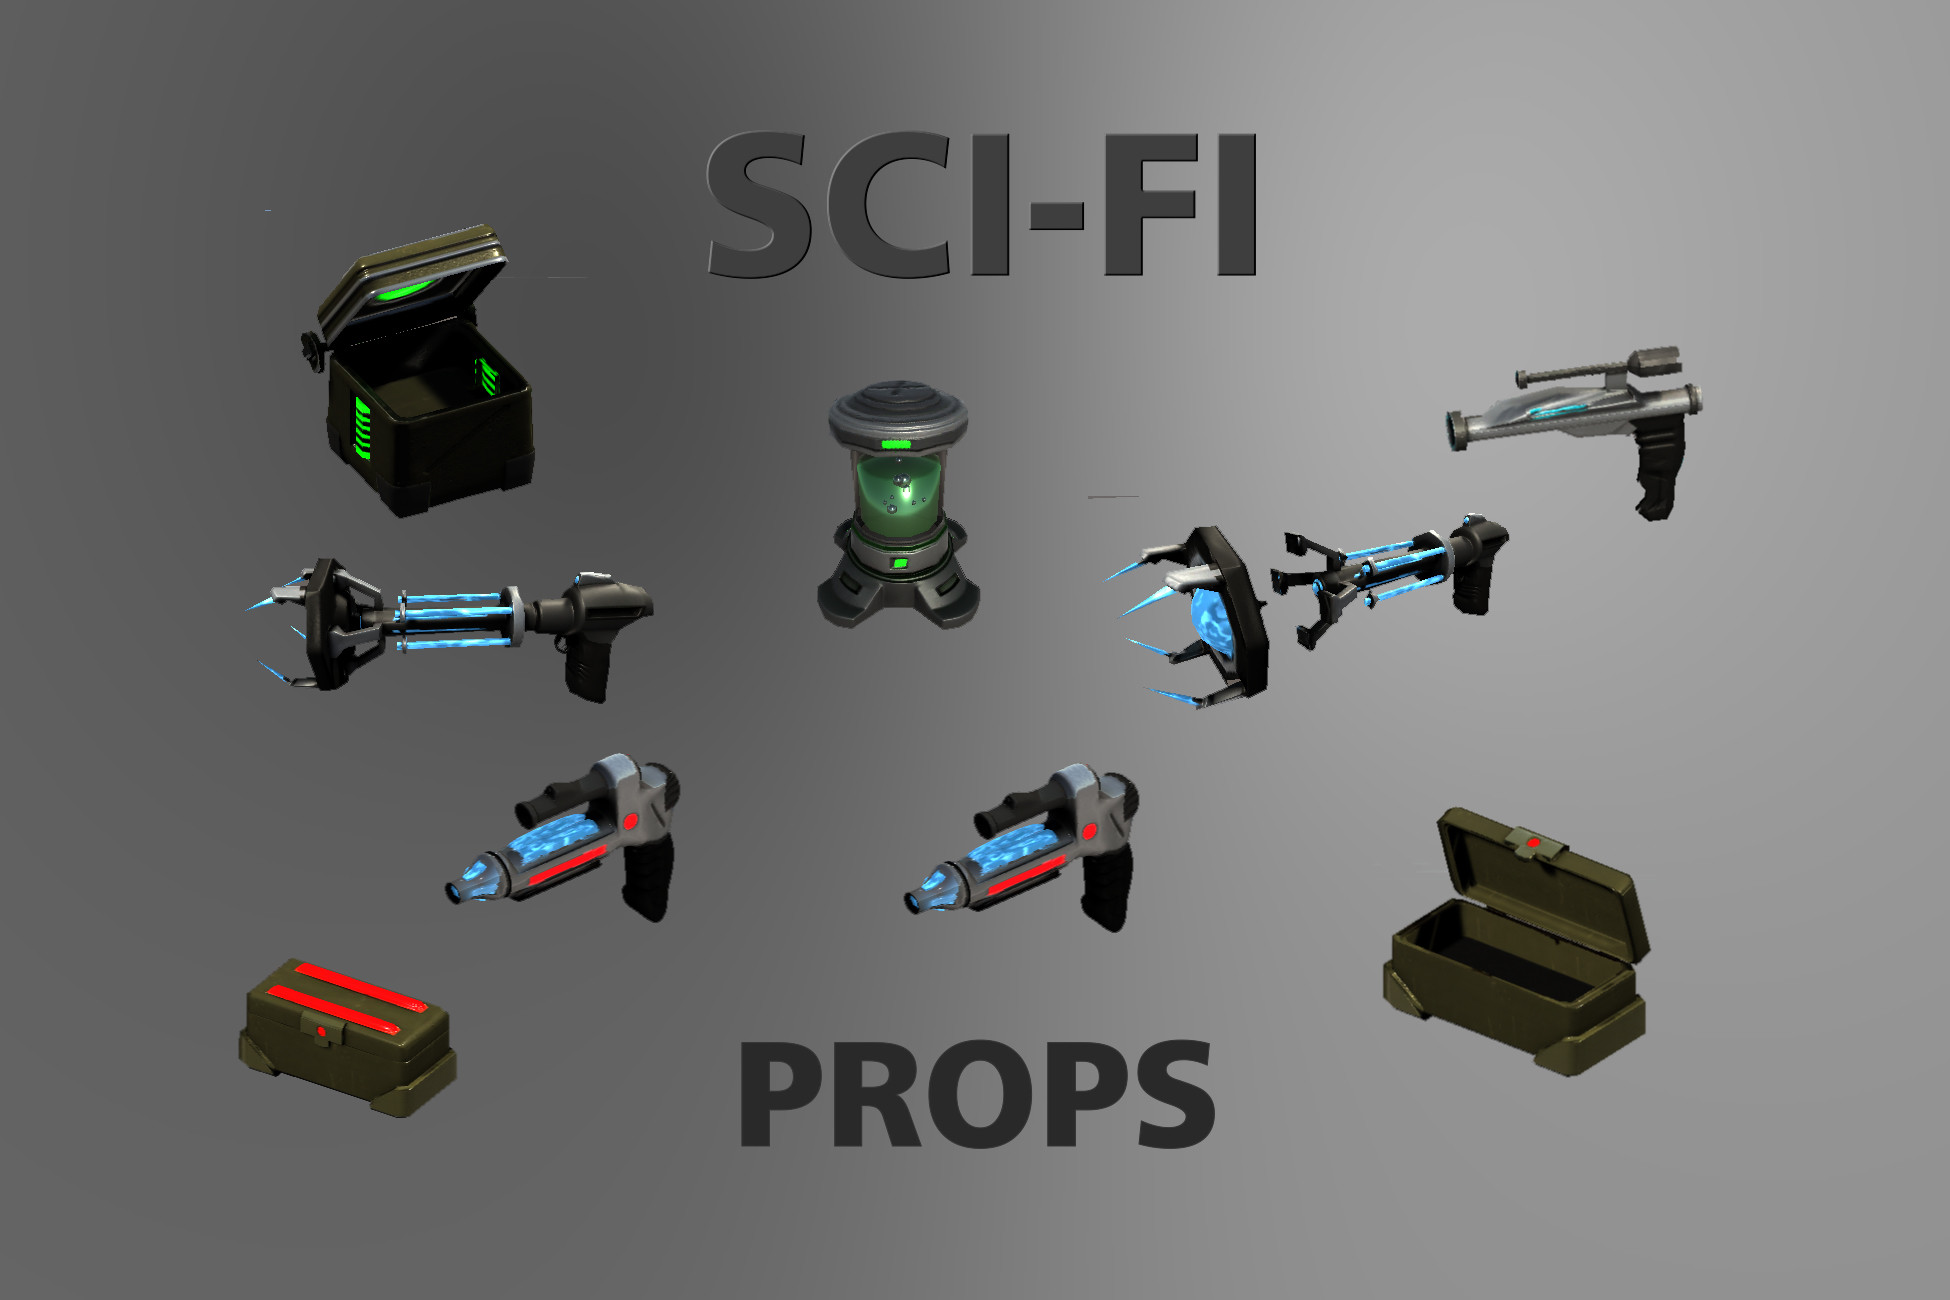 Sci-fi Assets 3D - Props and Items